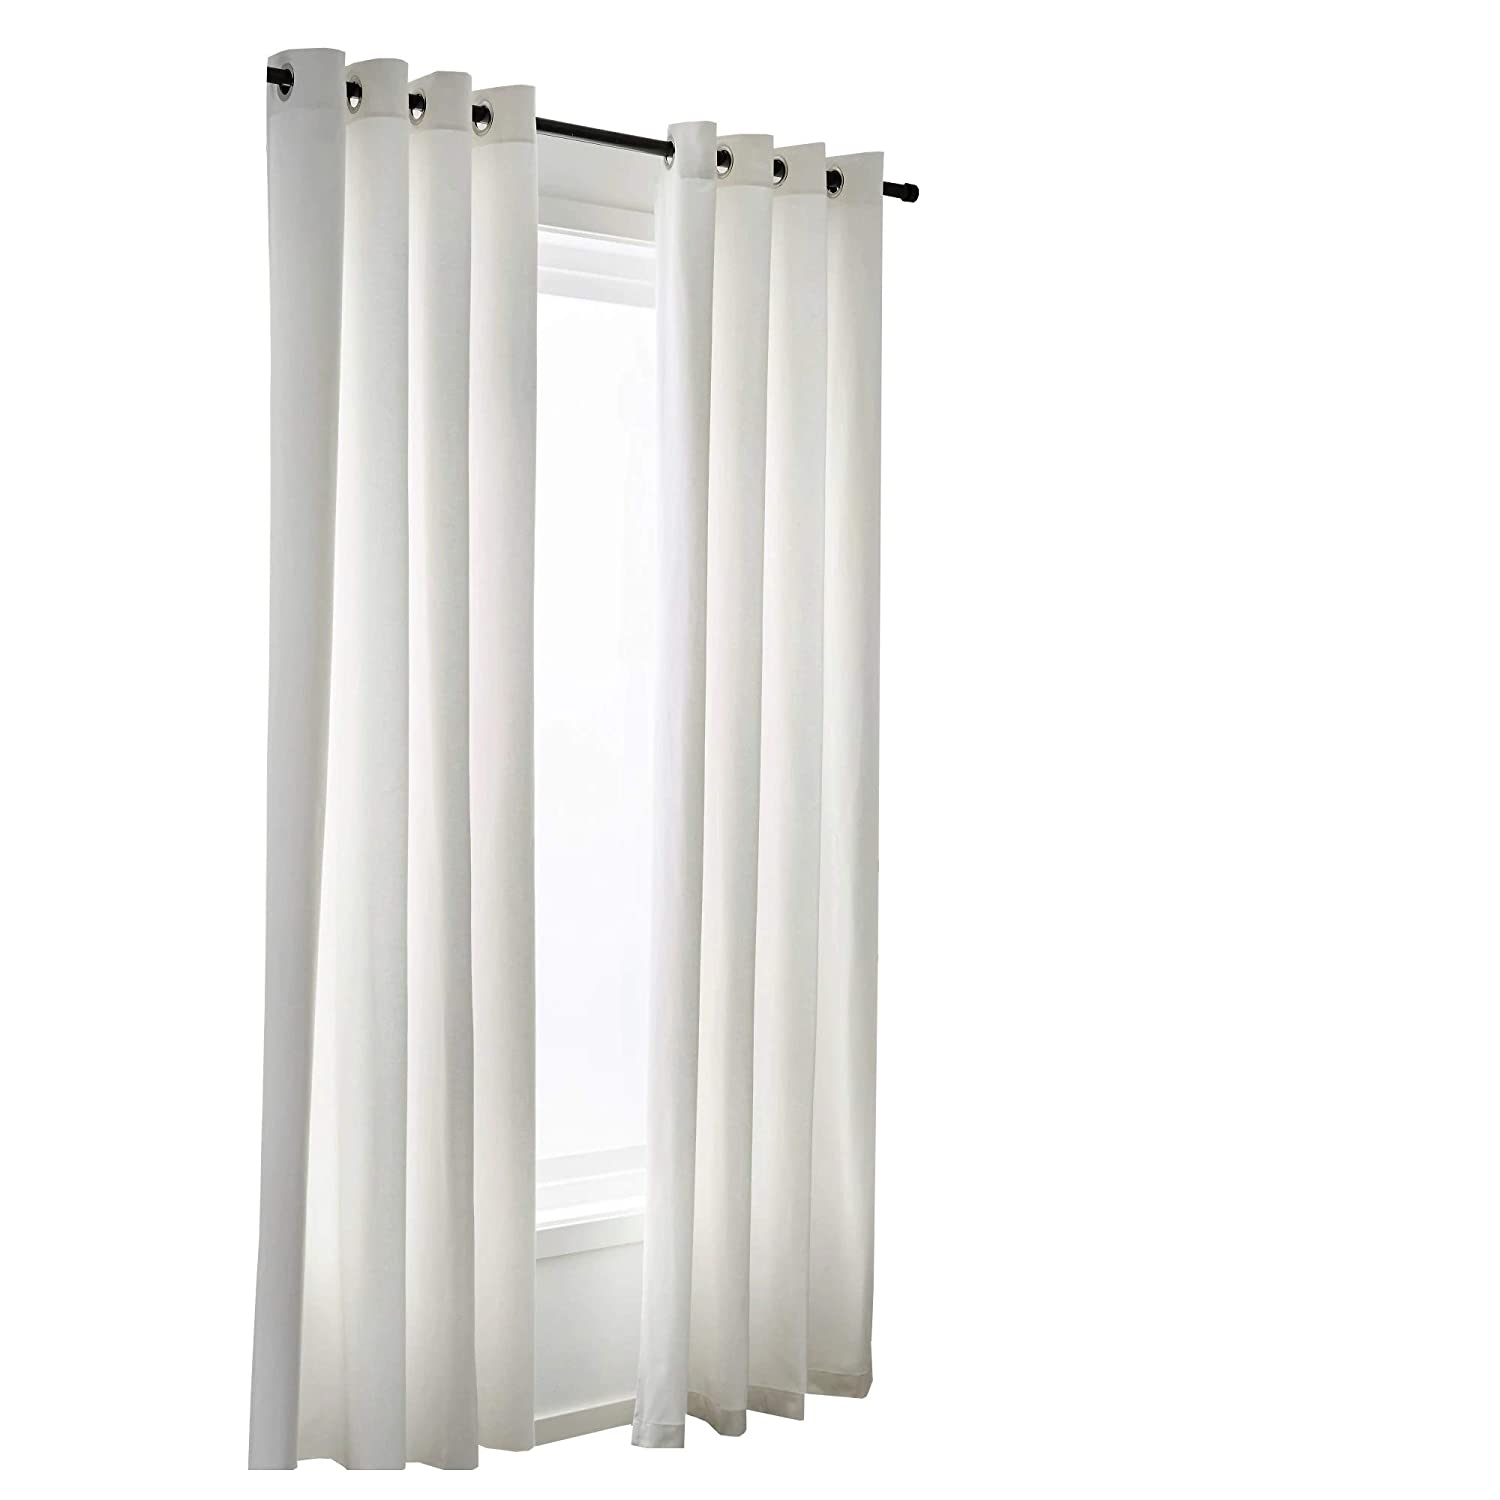 """Rajlinen 2 Panel Beautiful Curtain Off White 100 Percent Cotton Very Thick Material Window Elegance Curtains/Drape/Panels/Treatment24"""" w X 48"""" l (Off White)"""